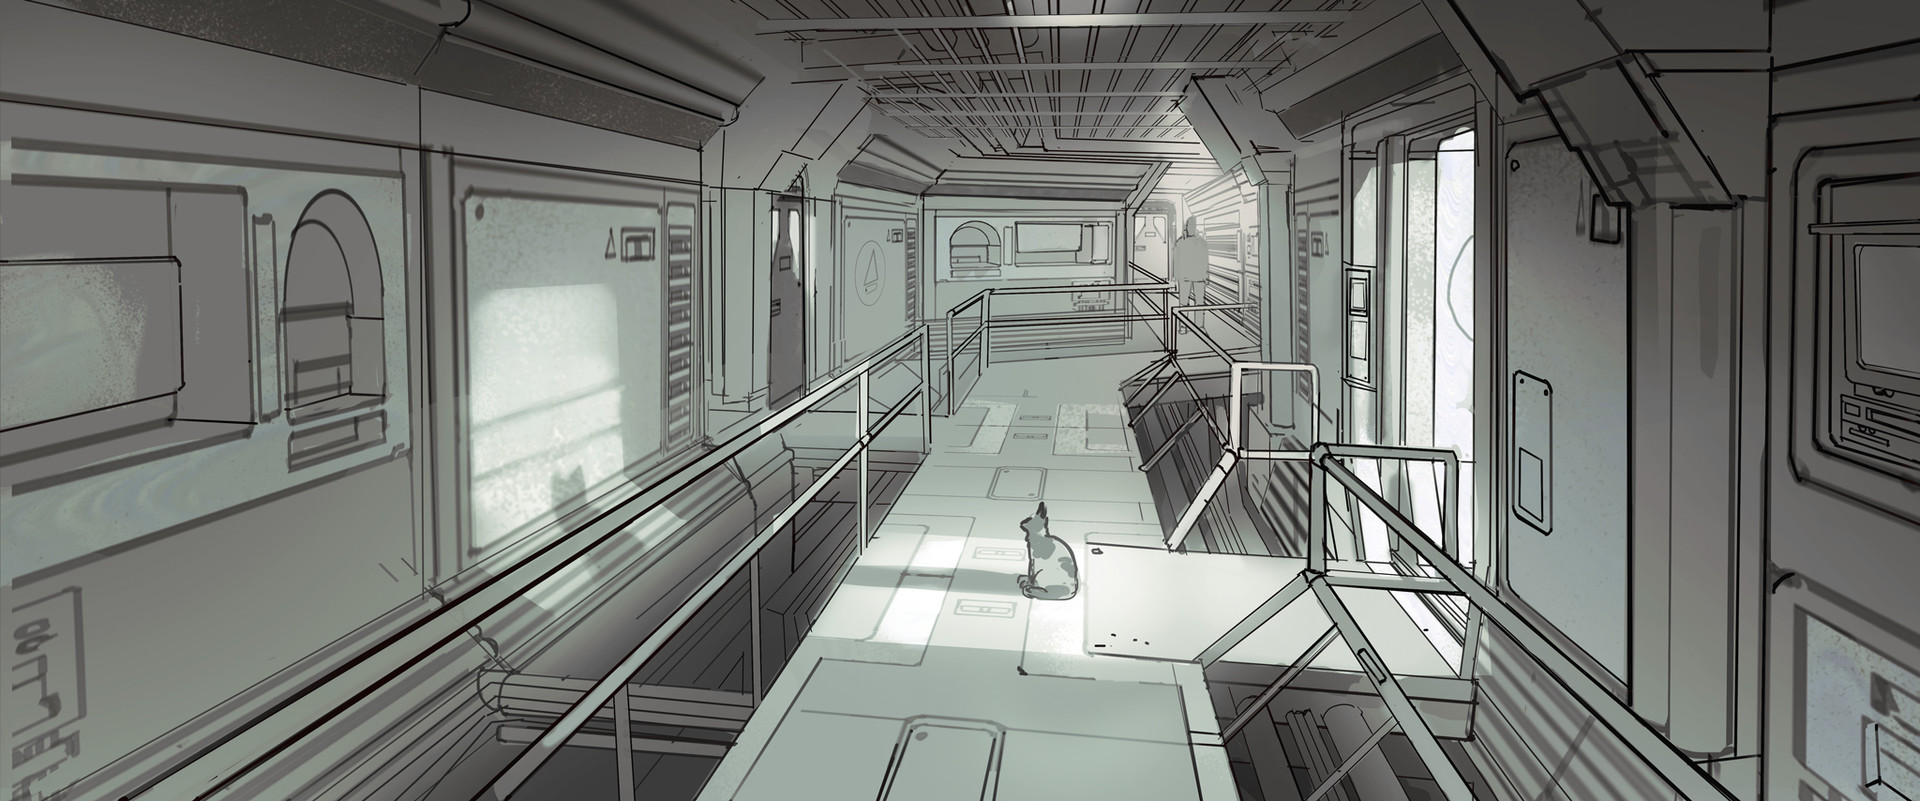 Adrien girod ag demo space station linework02